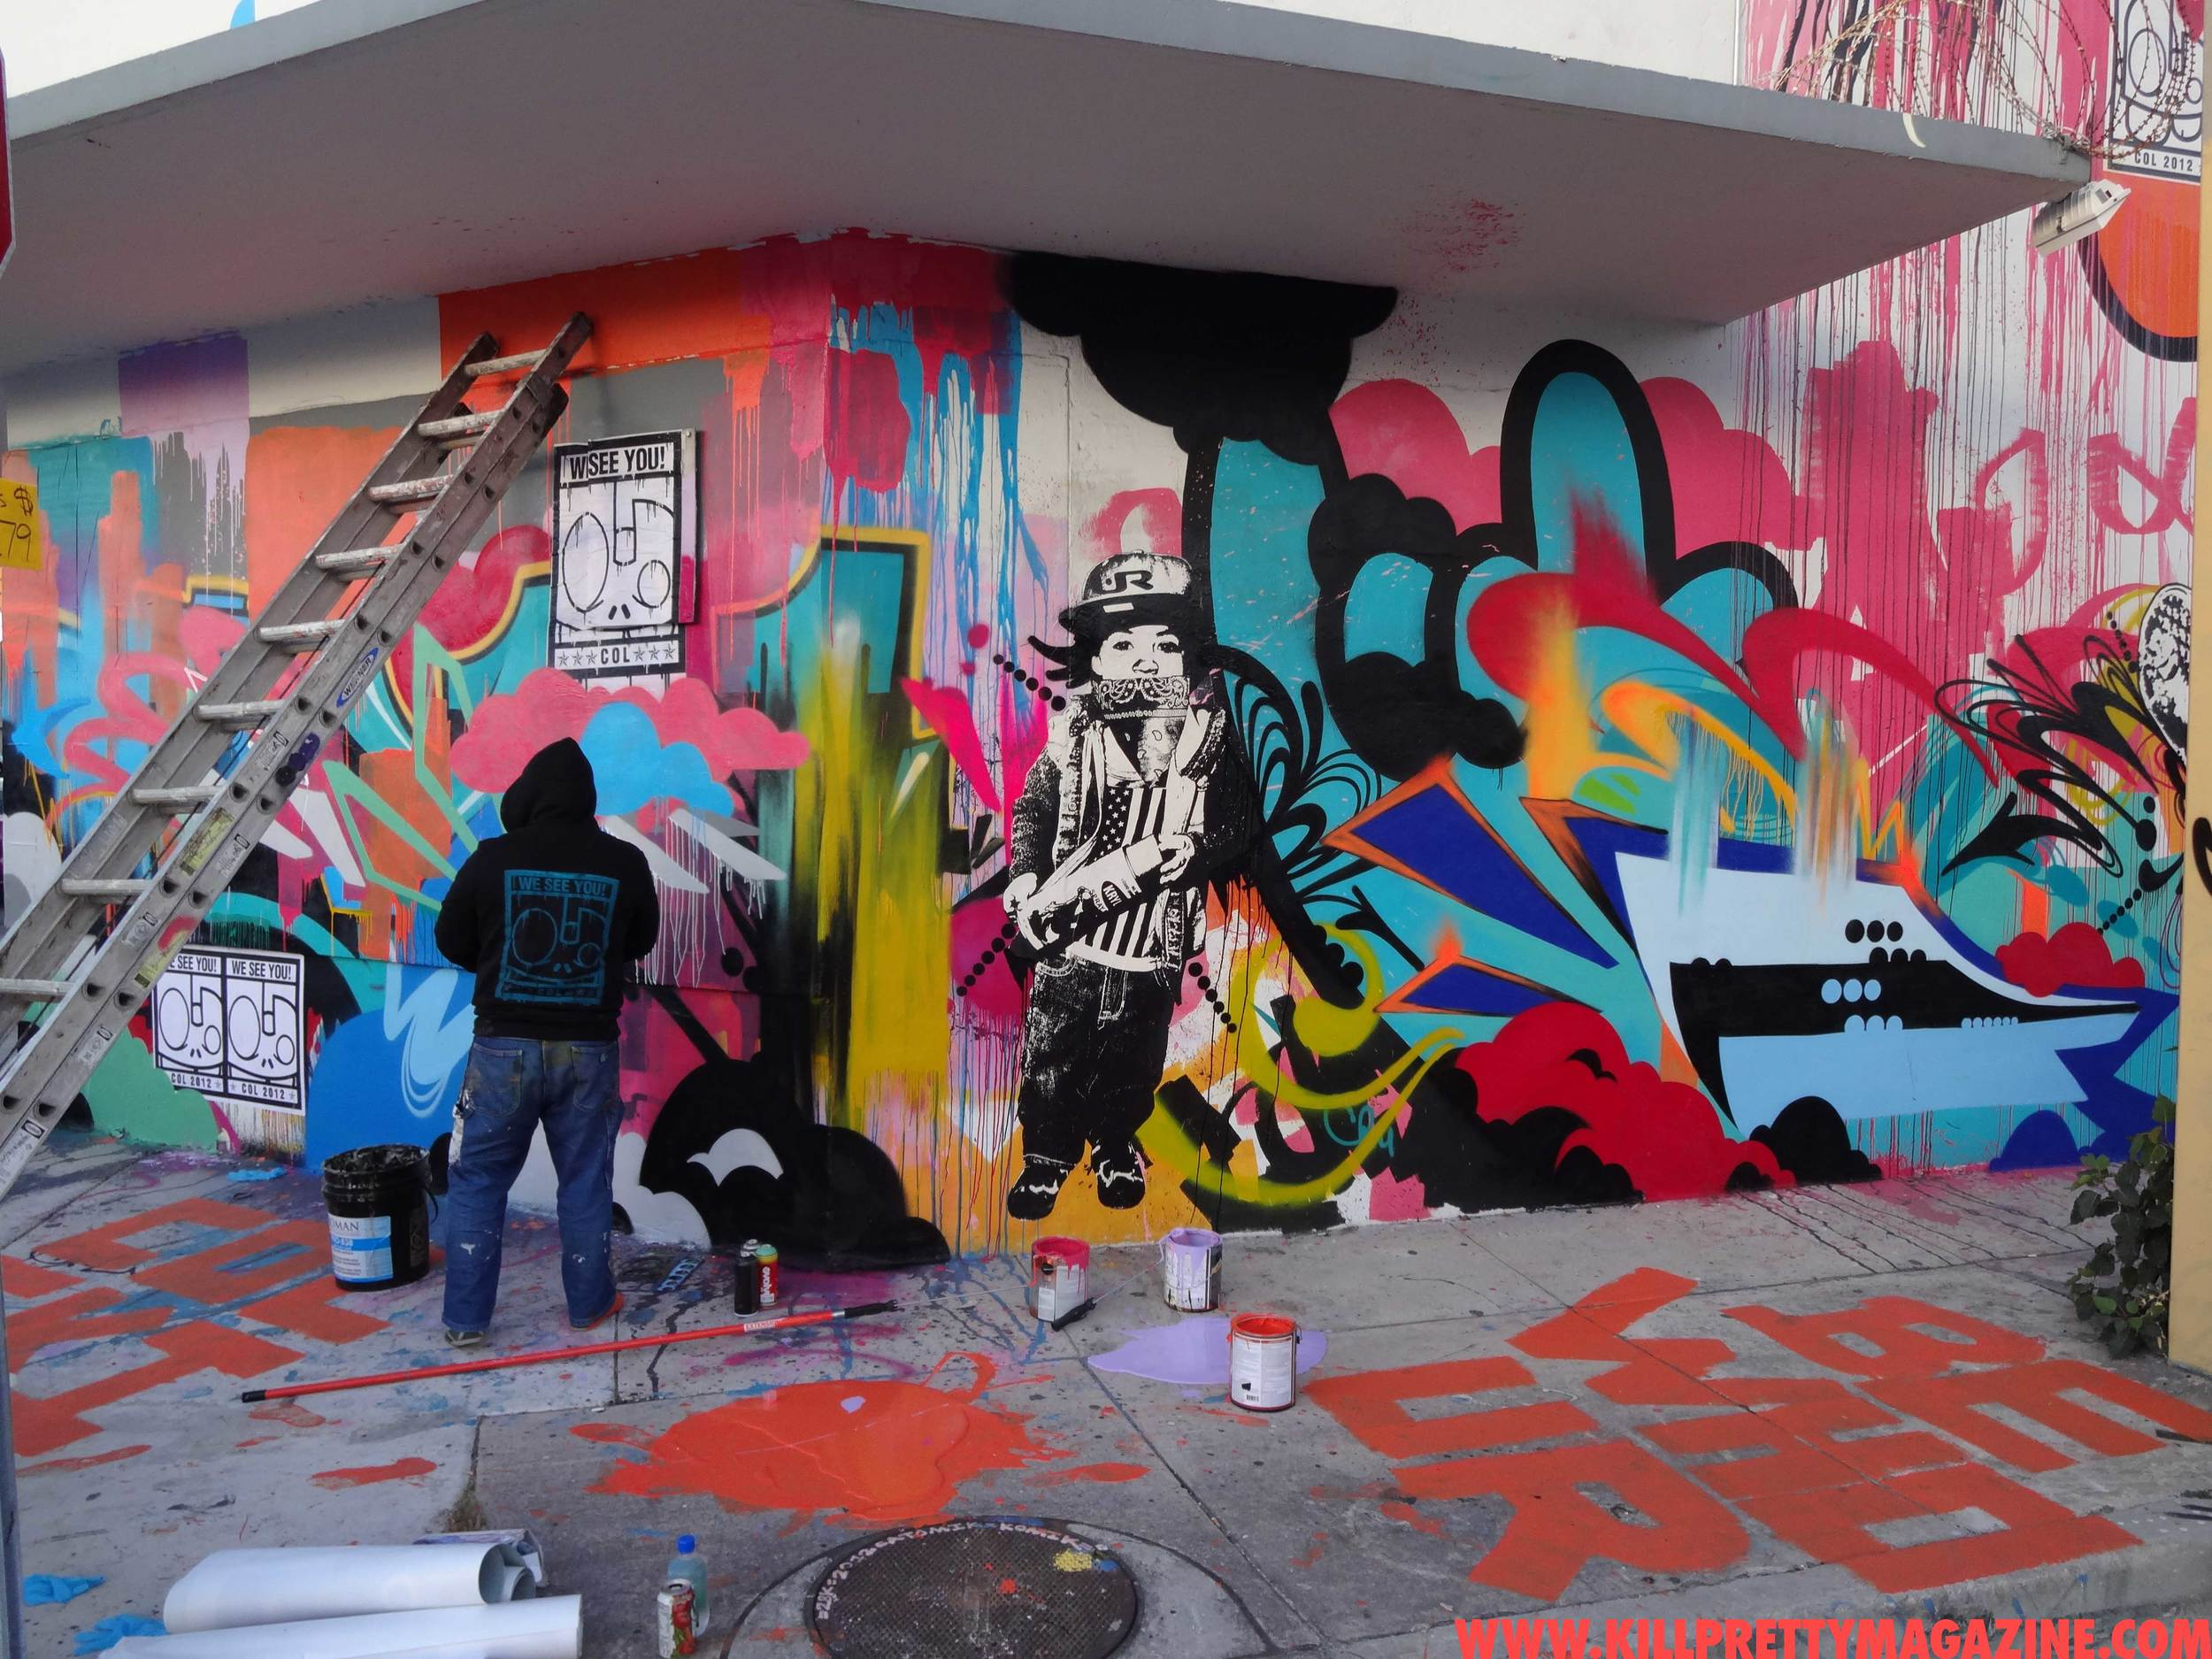 art-basel-2013-kill-pretty-graffiti-magazine-photo94